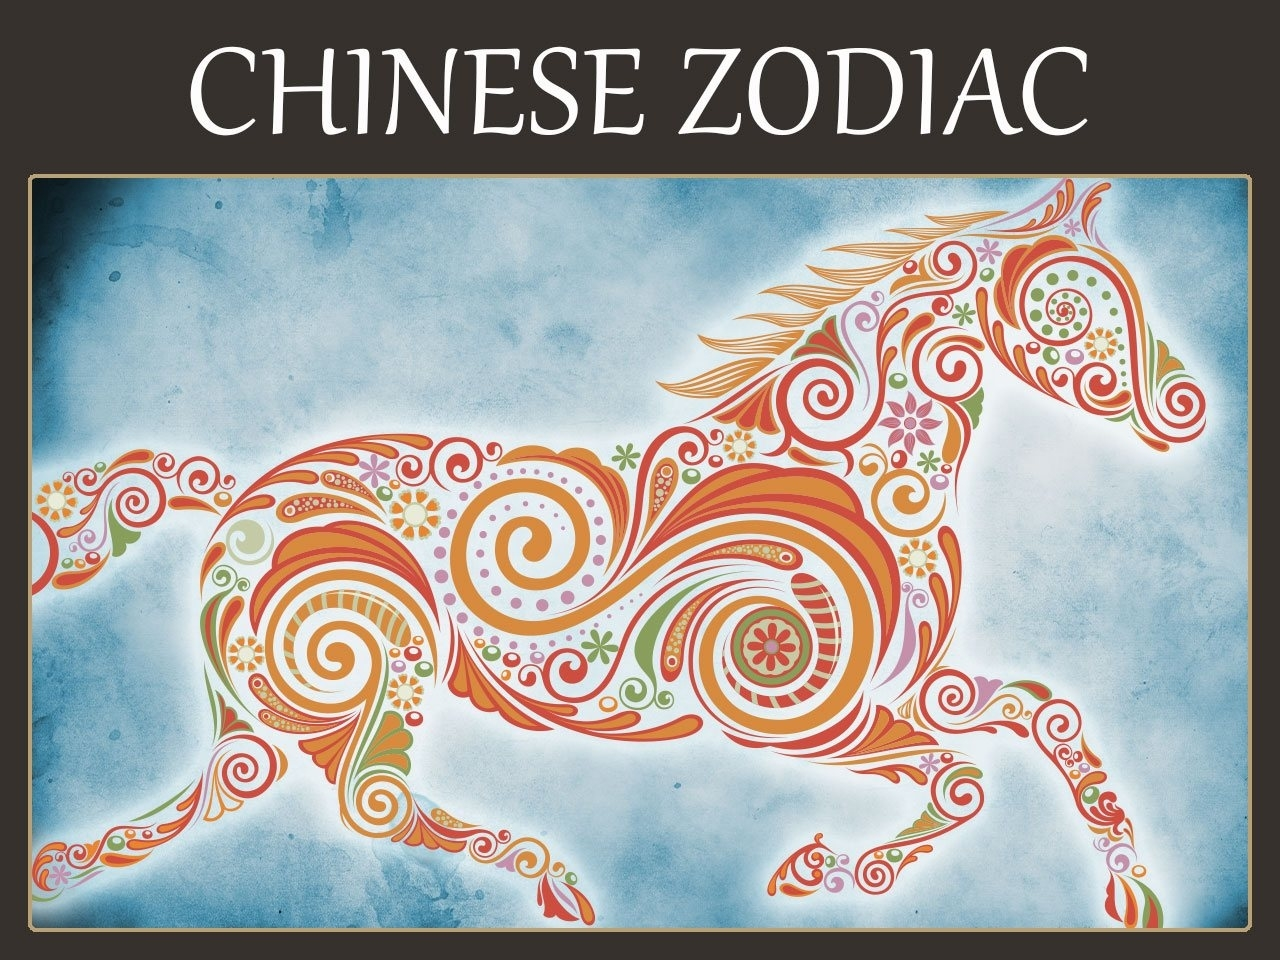 Chinese Zodiac Signs & Meanings | Personality, Traits Zodiac Calendar Personality Traits